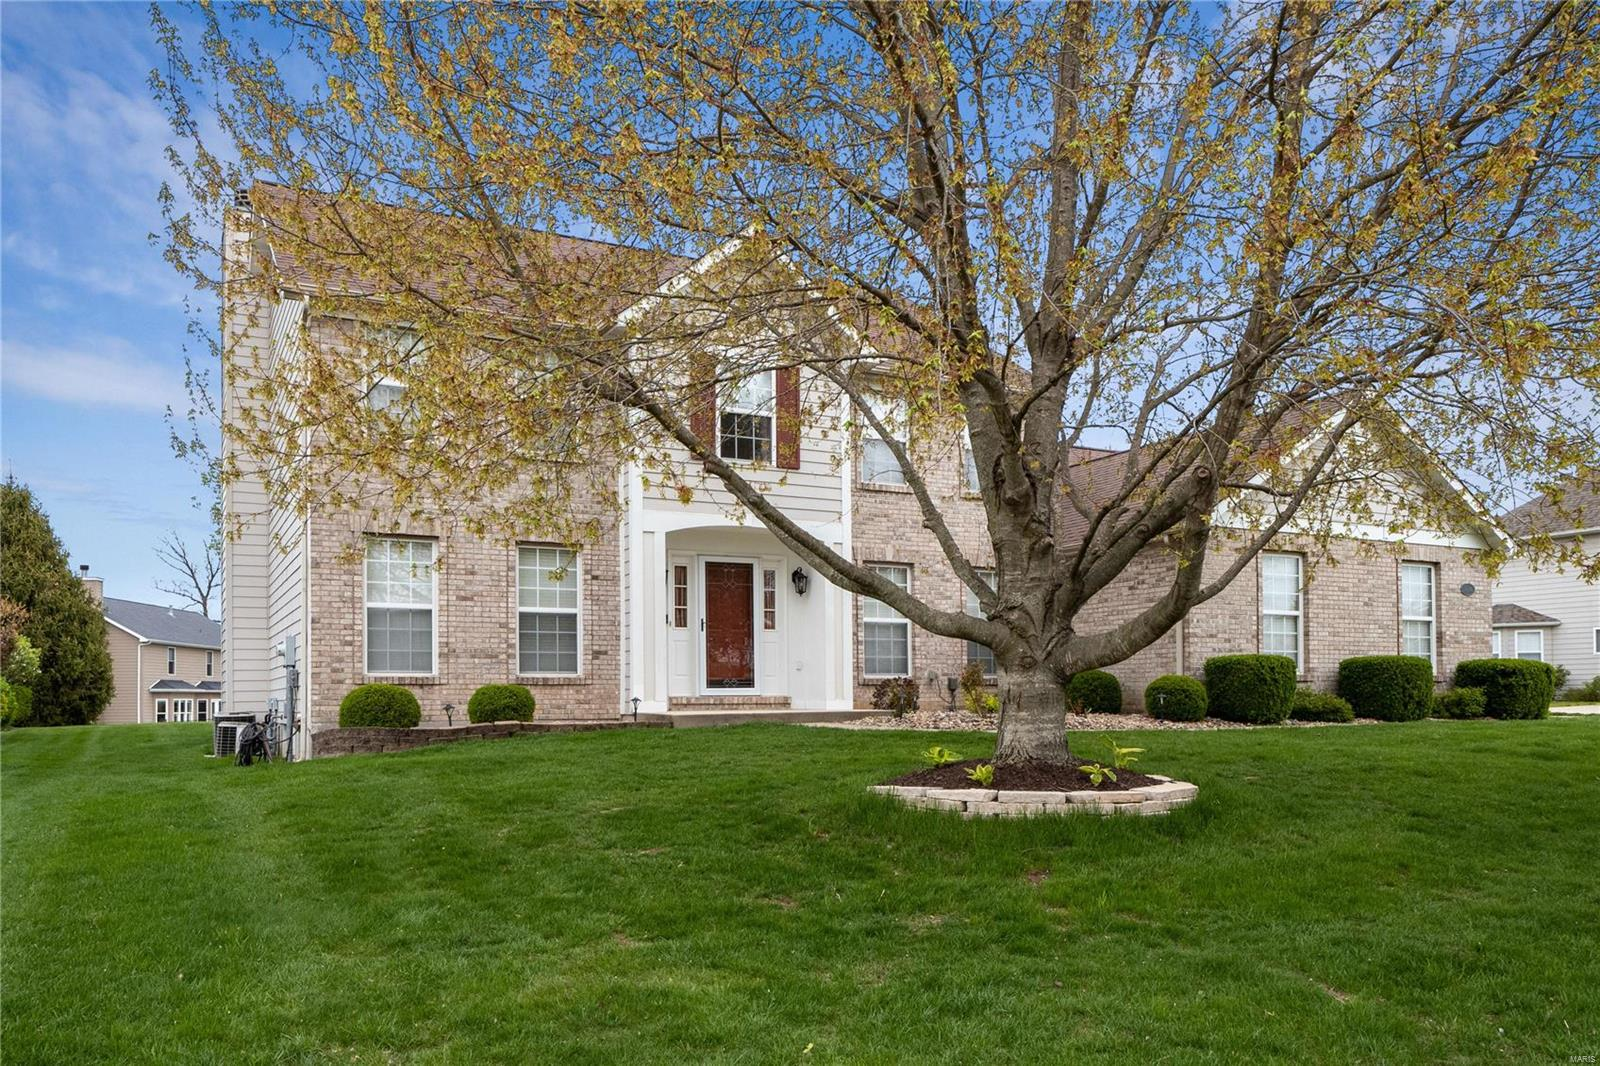 7426 Timberwolf Property Photo - Fairview Heights, IL real estate listing